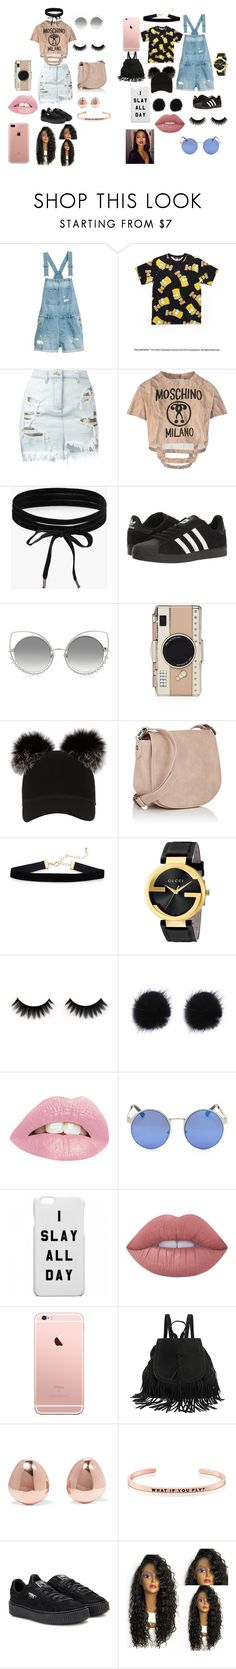 """bestie and i girls night out"" by aniquethompson on Polyvore featuring Versus, Moschino, Boohoo, adidas, Marc Jacobs, Kate Spade, Charlotte Simone, Deux Lux, Gucci and Lime Crime"